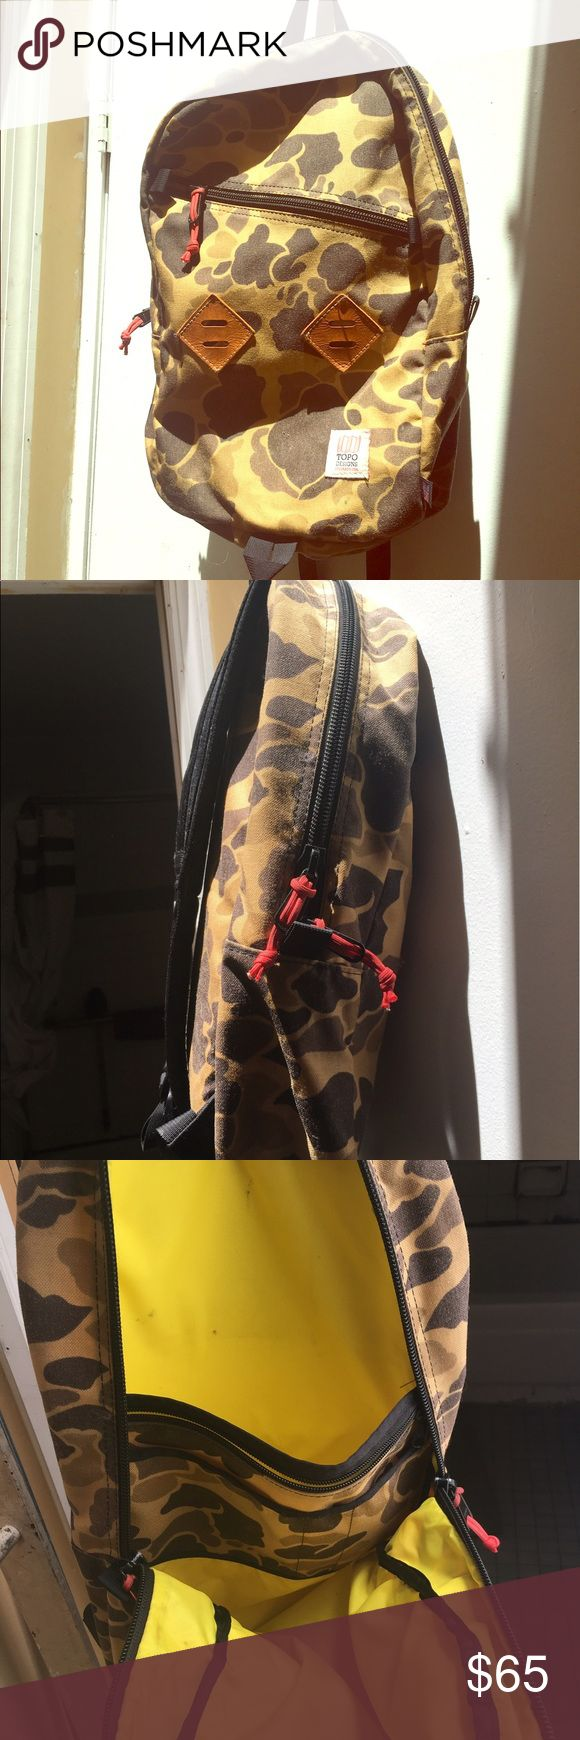 Topo Designs Backpack Cheetah print with red accents. Laptop holder inside. Topo Designs is a quality hiking backpack company located in Colorado. It was originally purchased for $110. Bags Backpacks